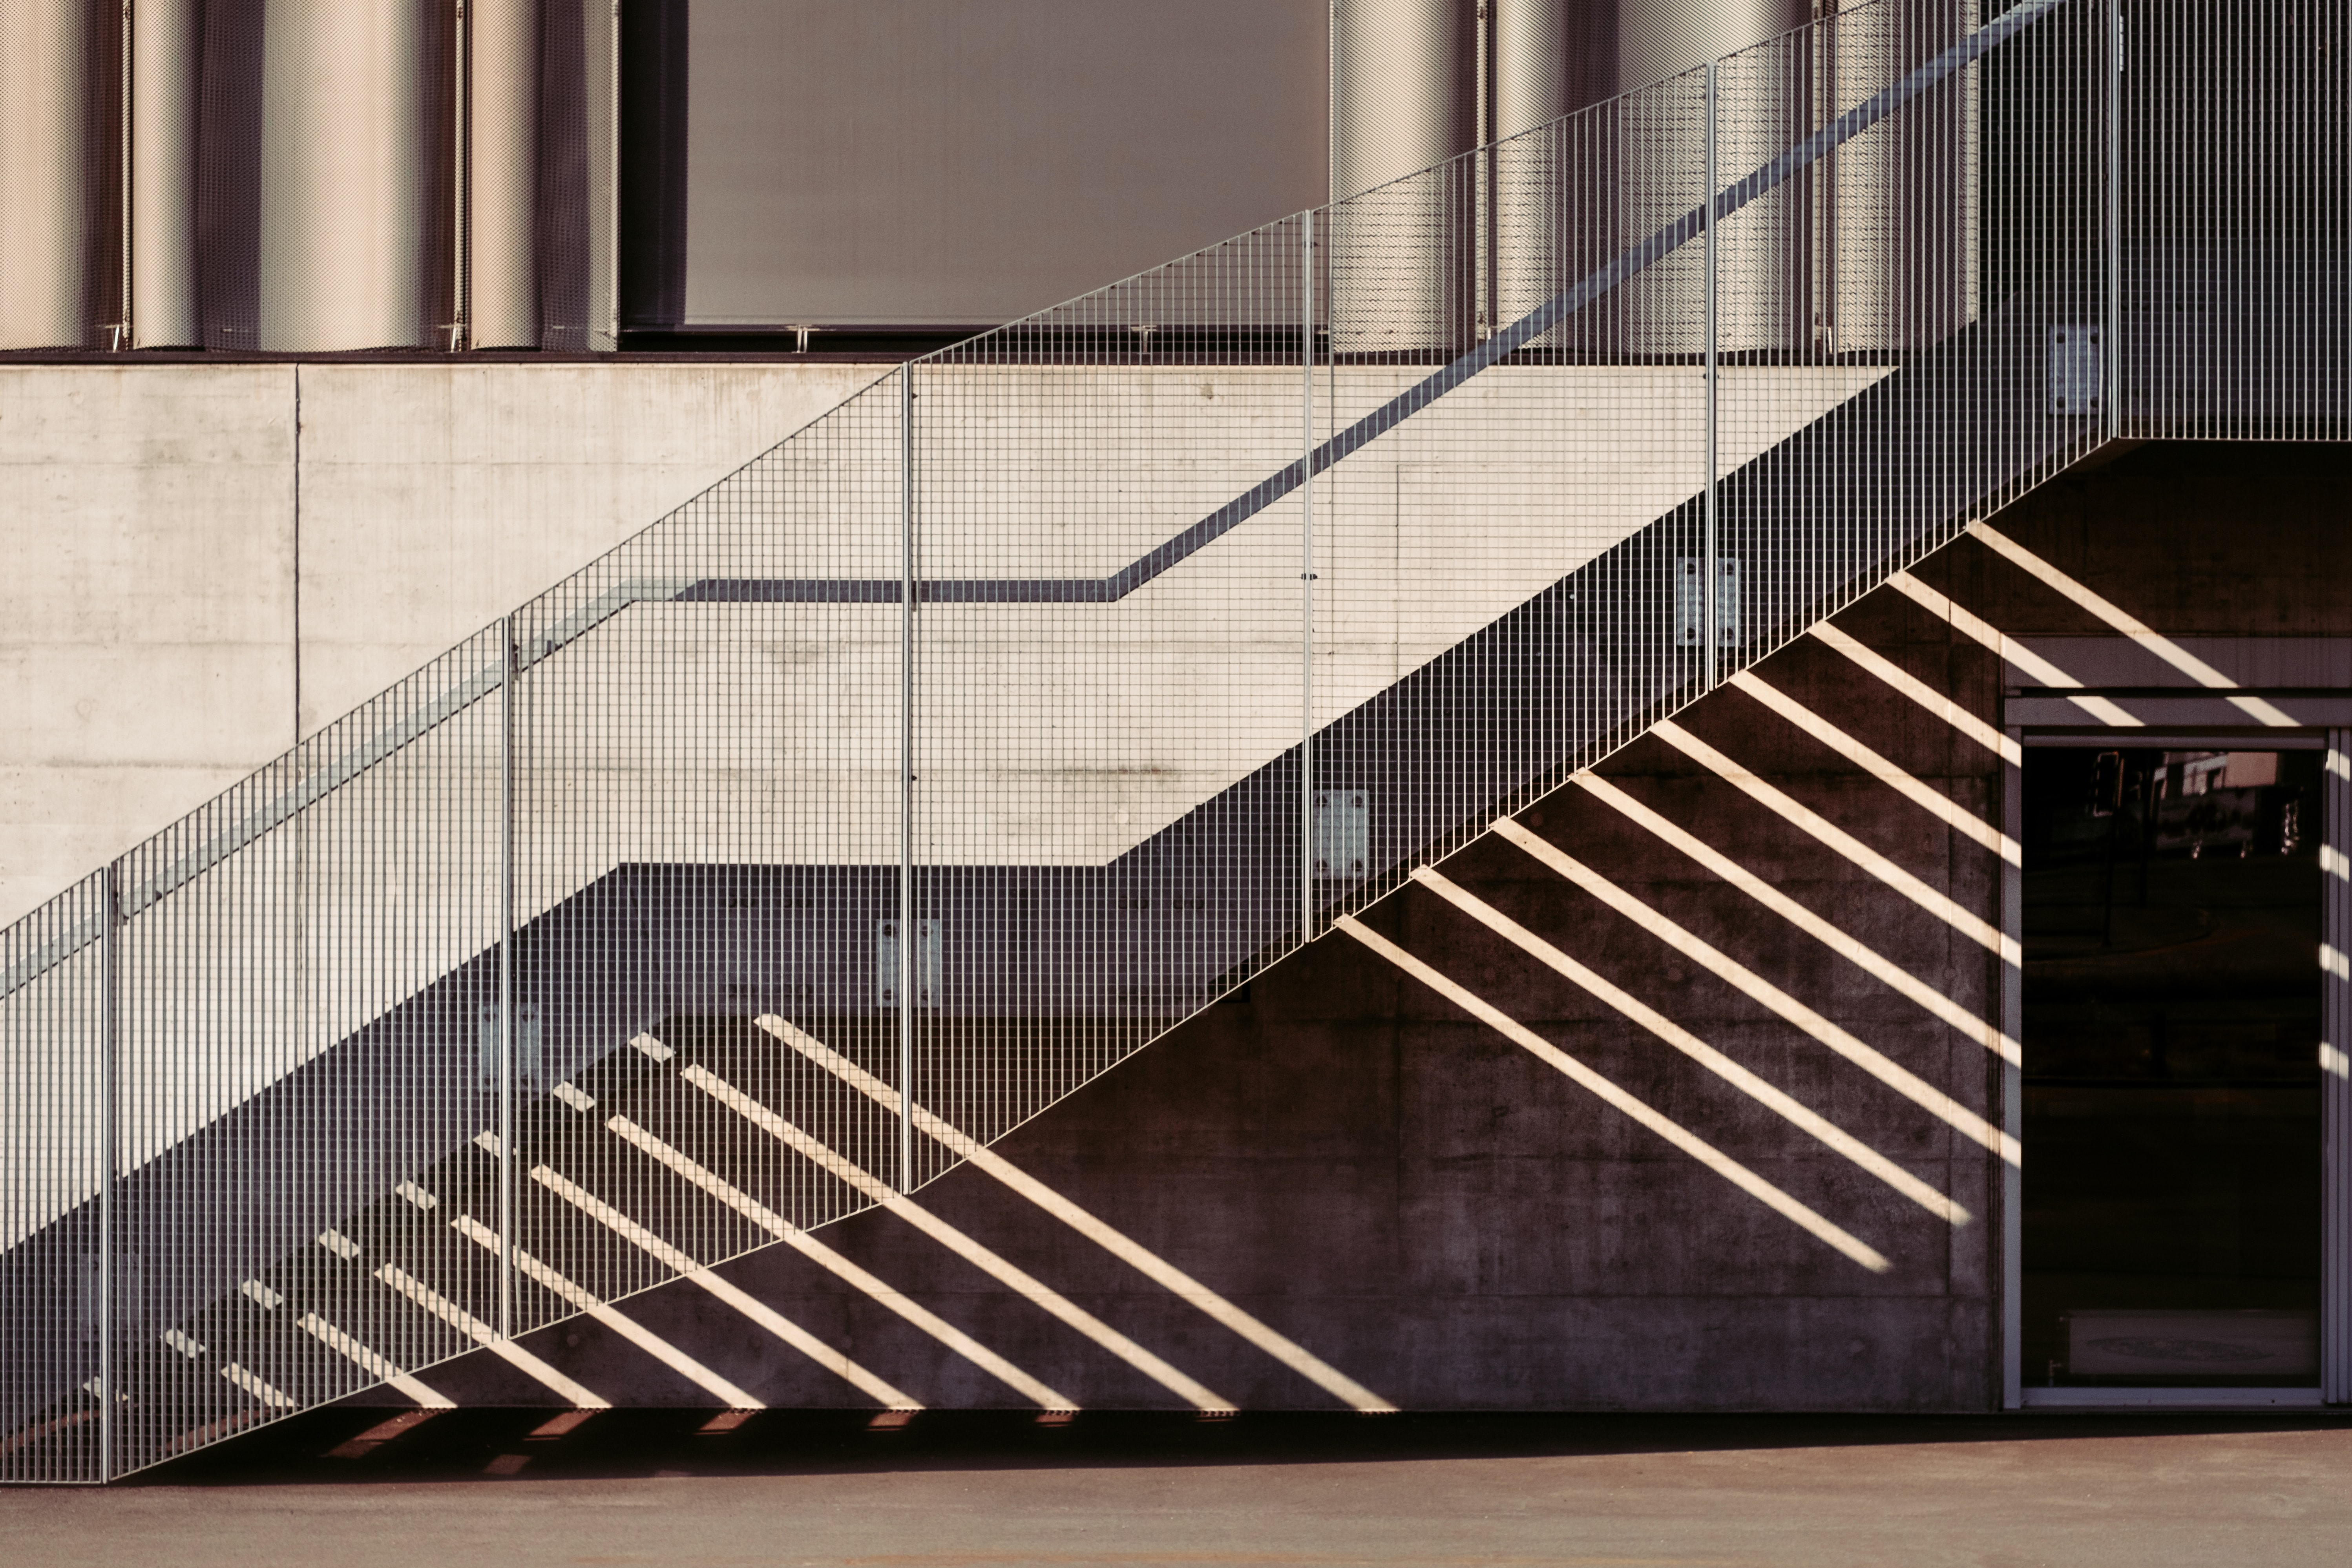 A metal stairway outside a concrete building